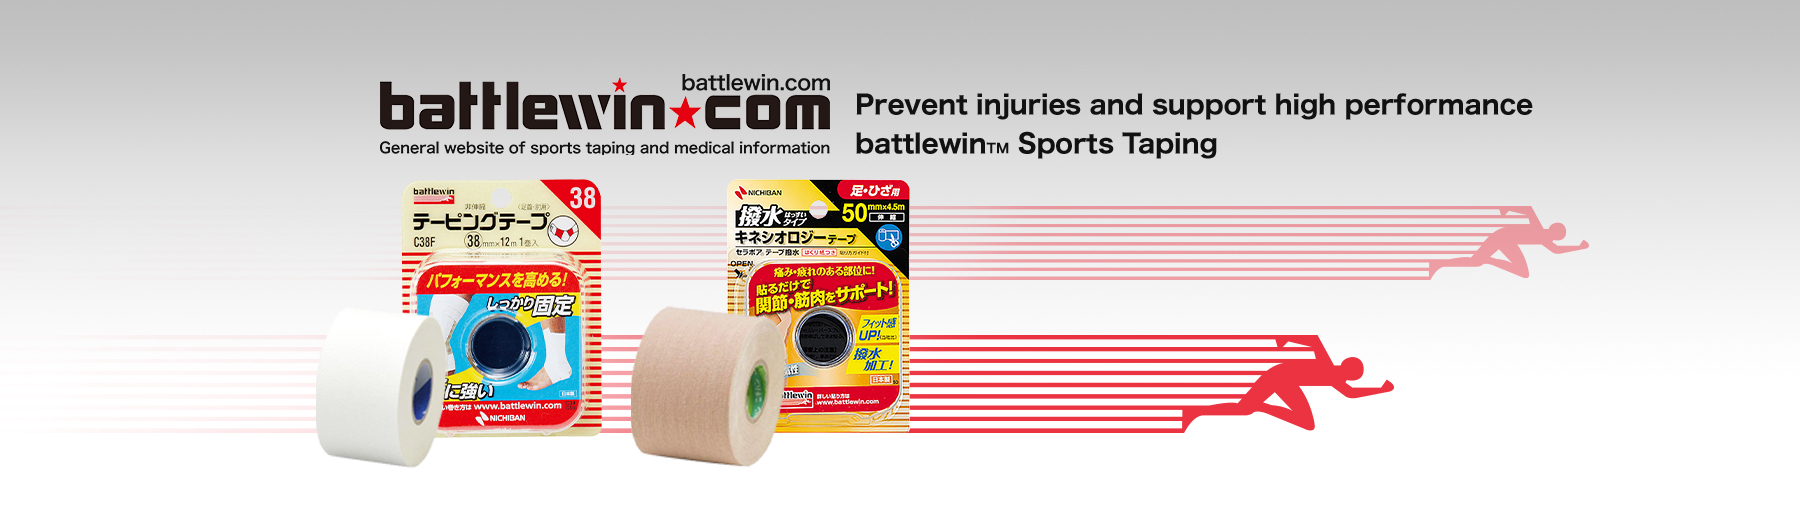 General website of sports taping and medical information Prevent injuries and support high performance battlewin.comTM Sports Taping